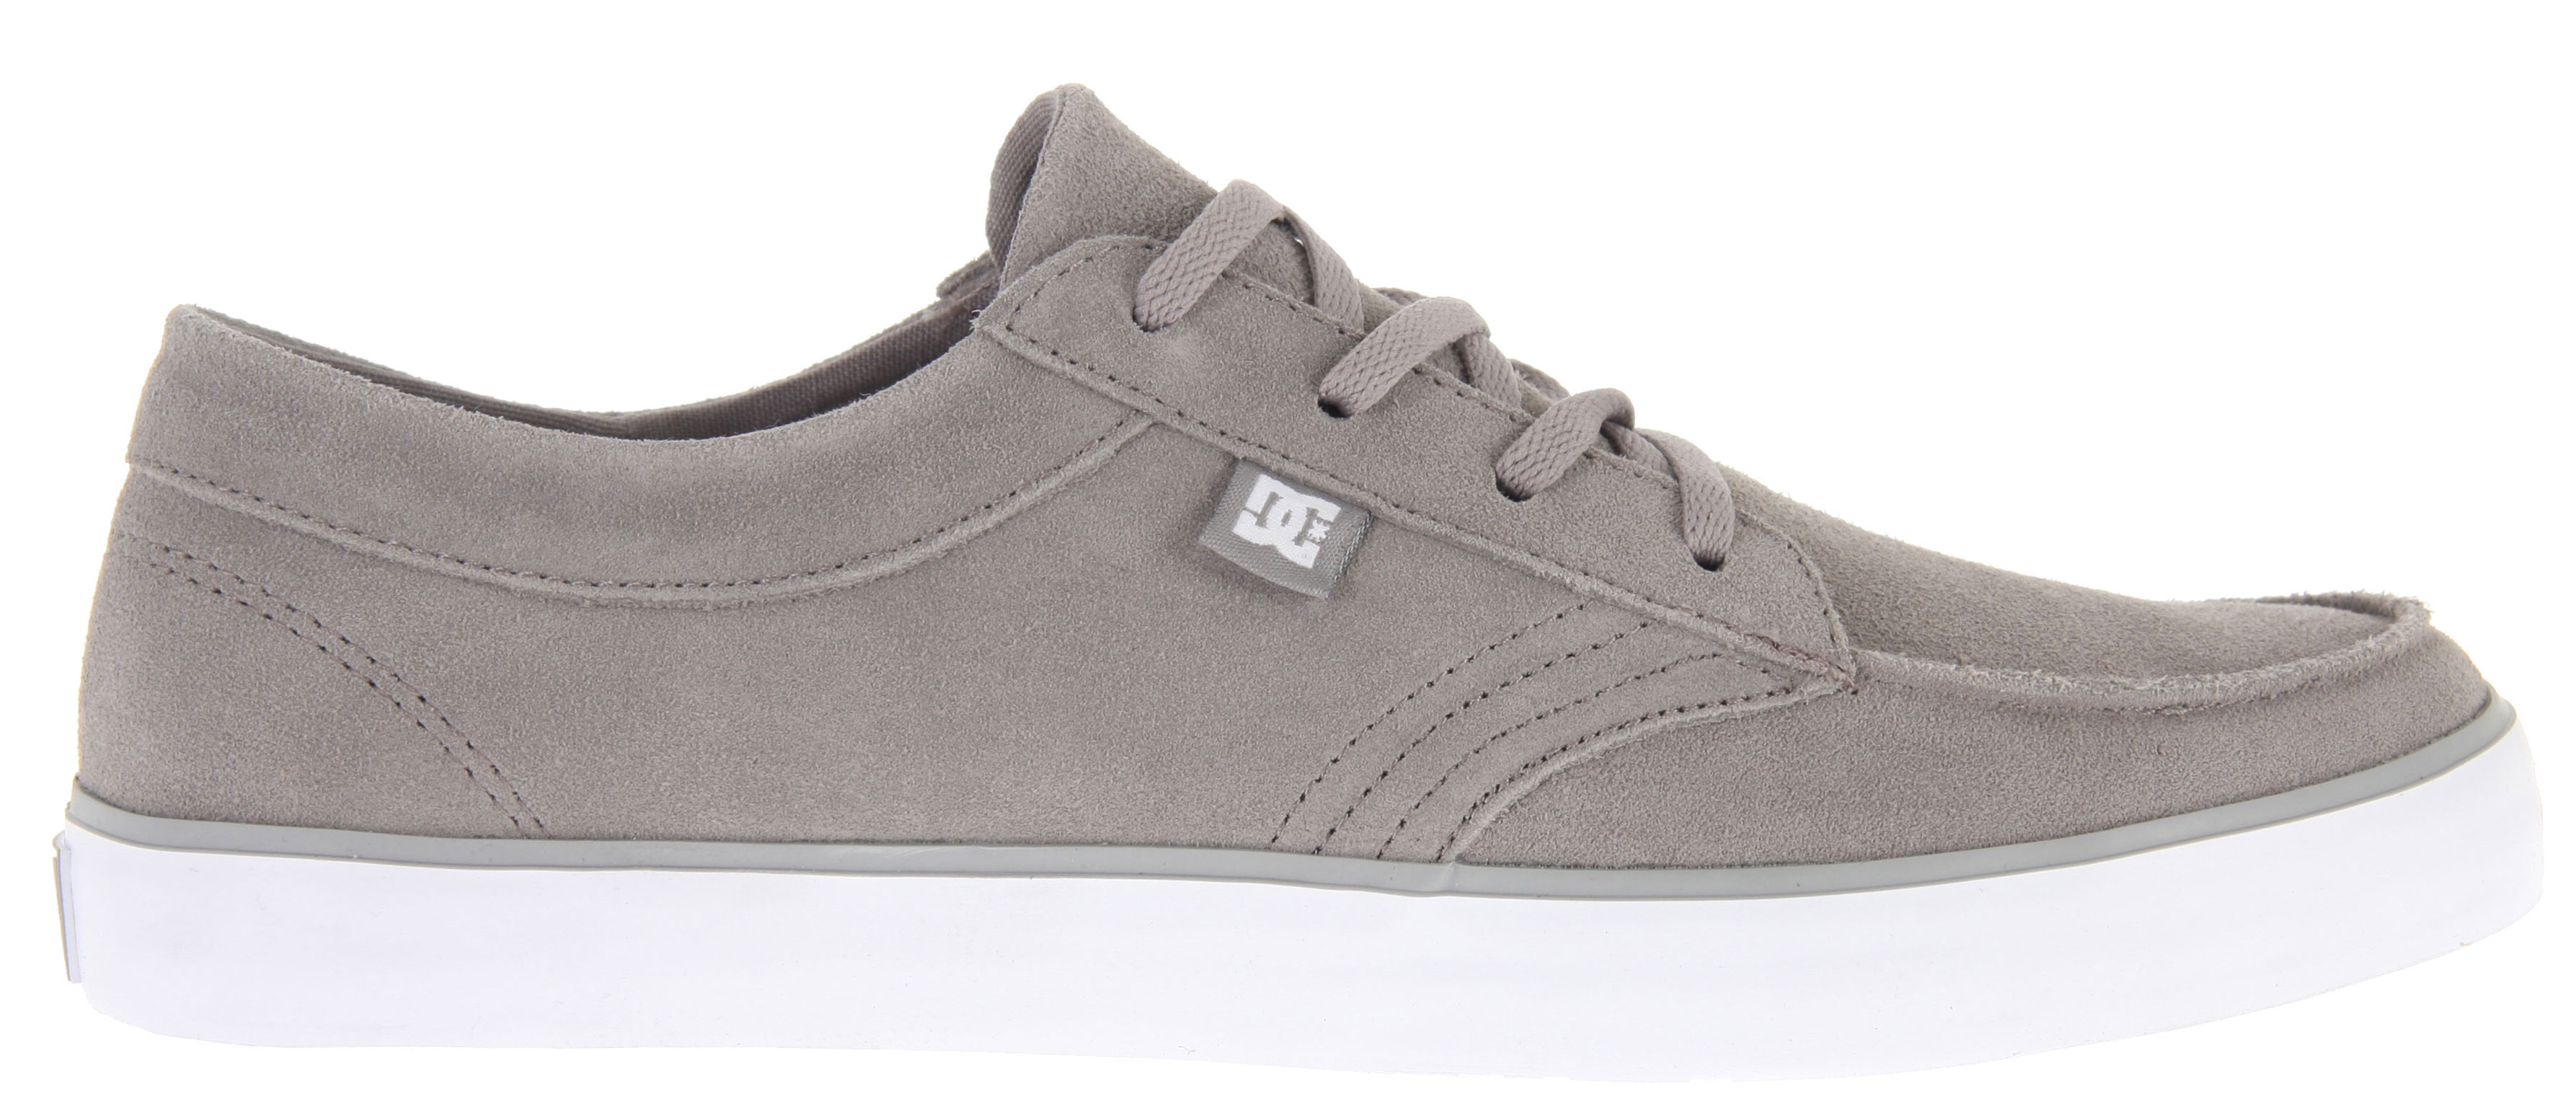 Skateboard Key Features of the DC Standard Skate Shoes: Vulcanized construction Suede upper DC's pill pattern outsole - $35.95